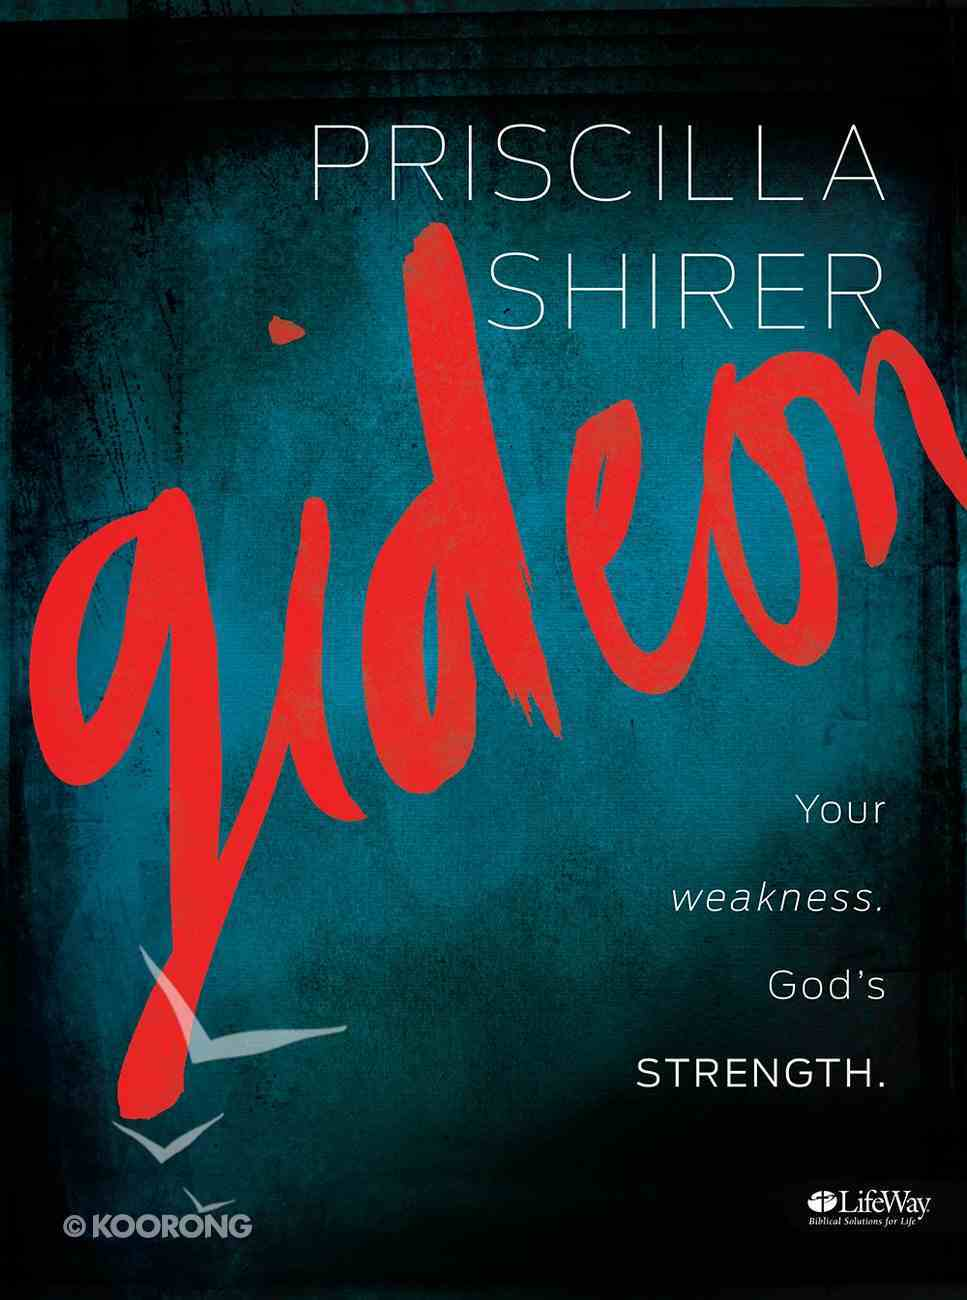 Gideon: Your Weakness, God's Strength (Member Book) Paperback